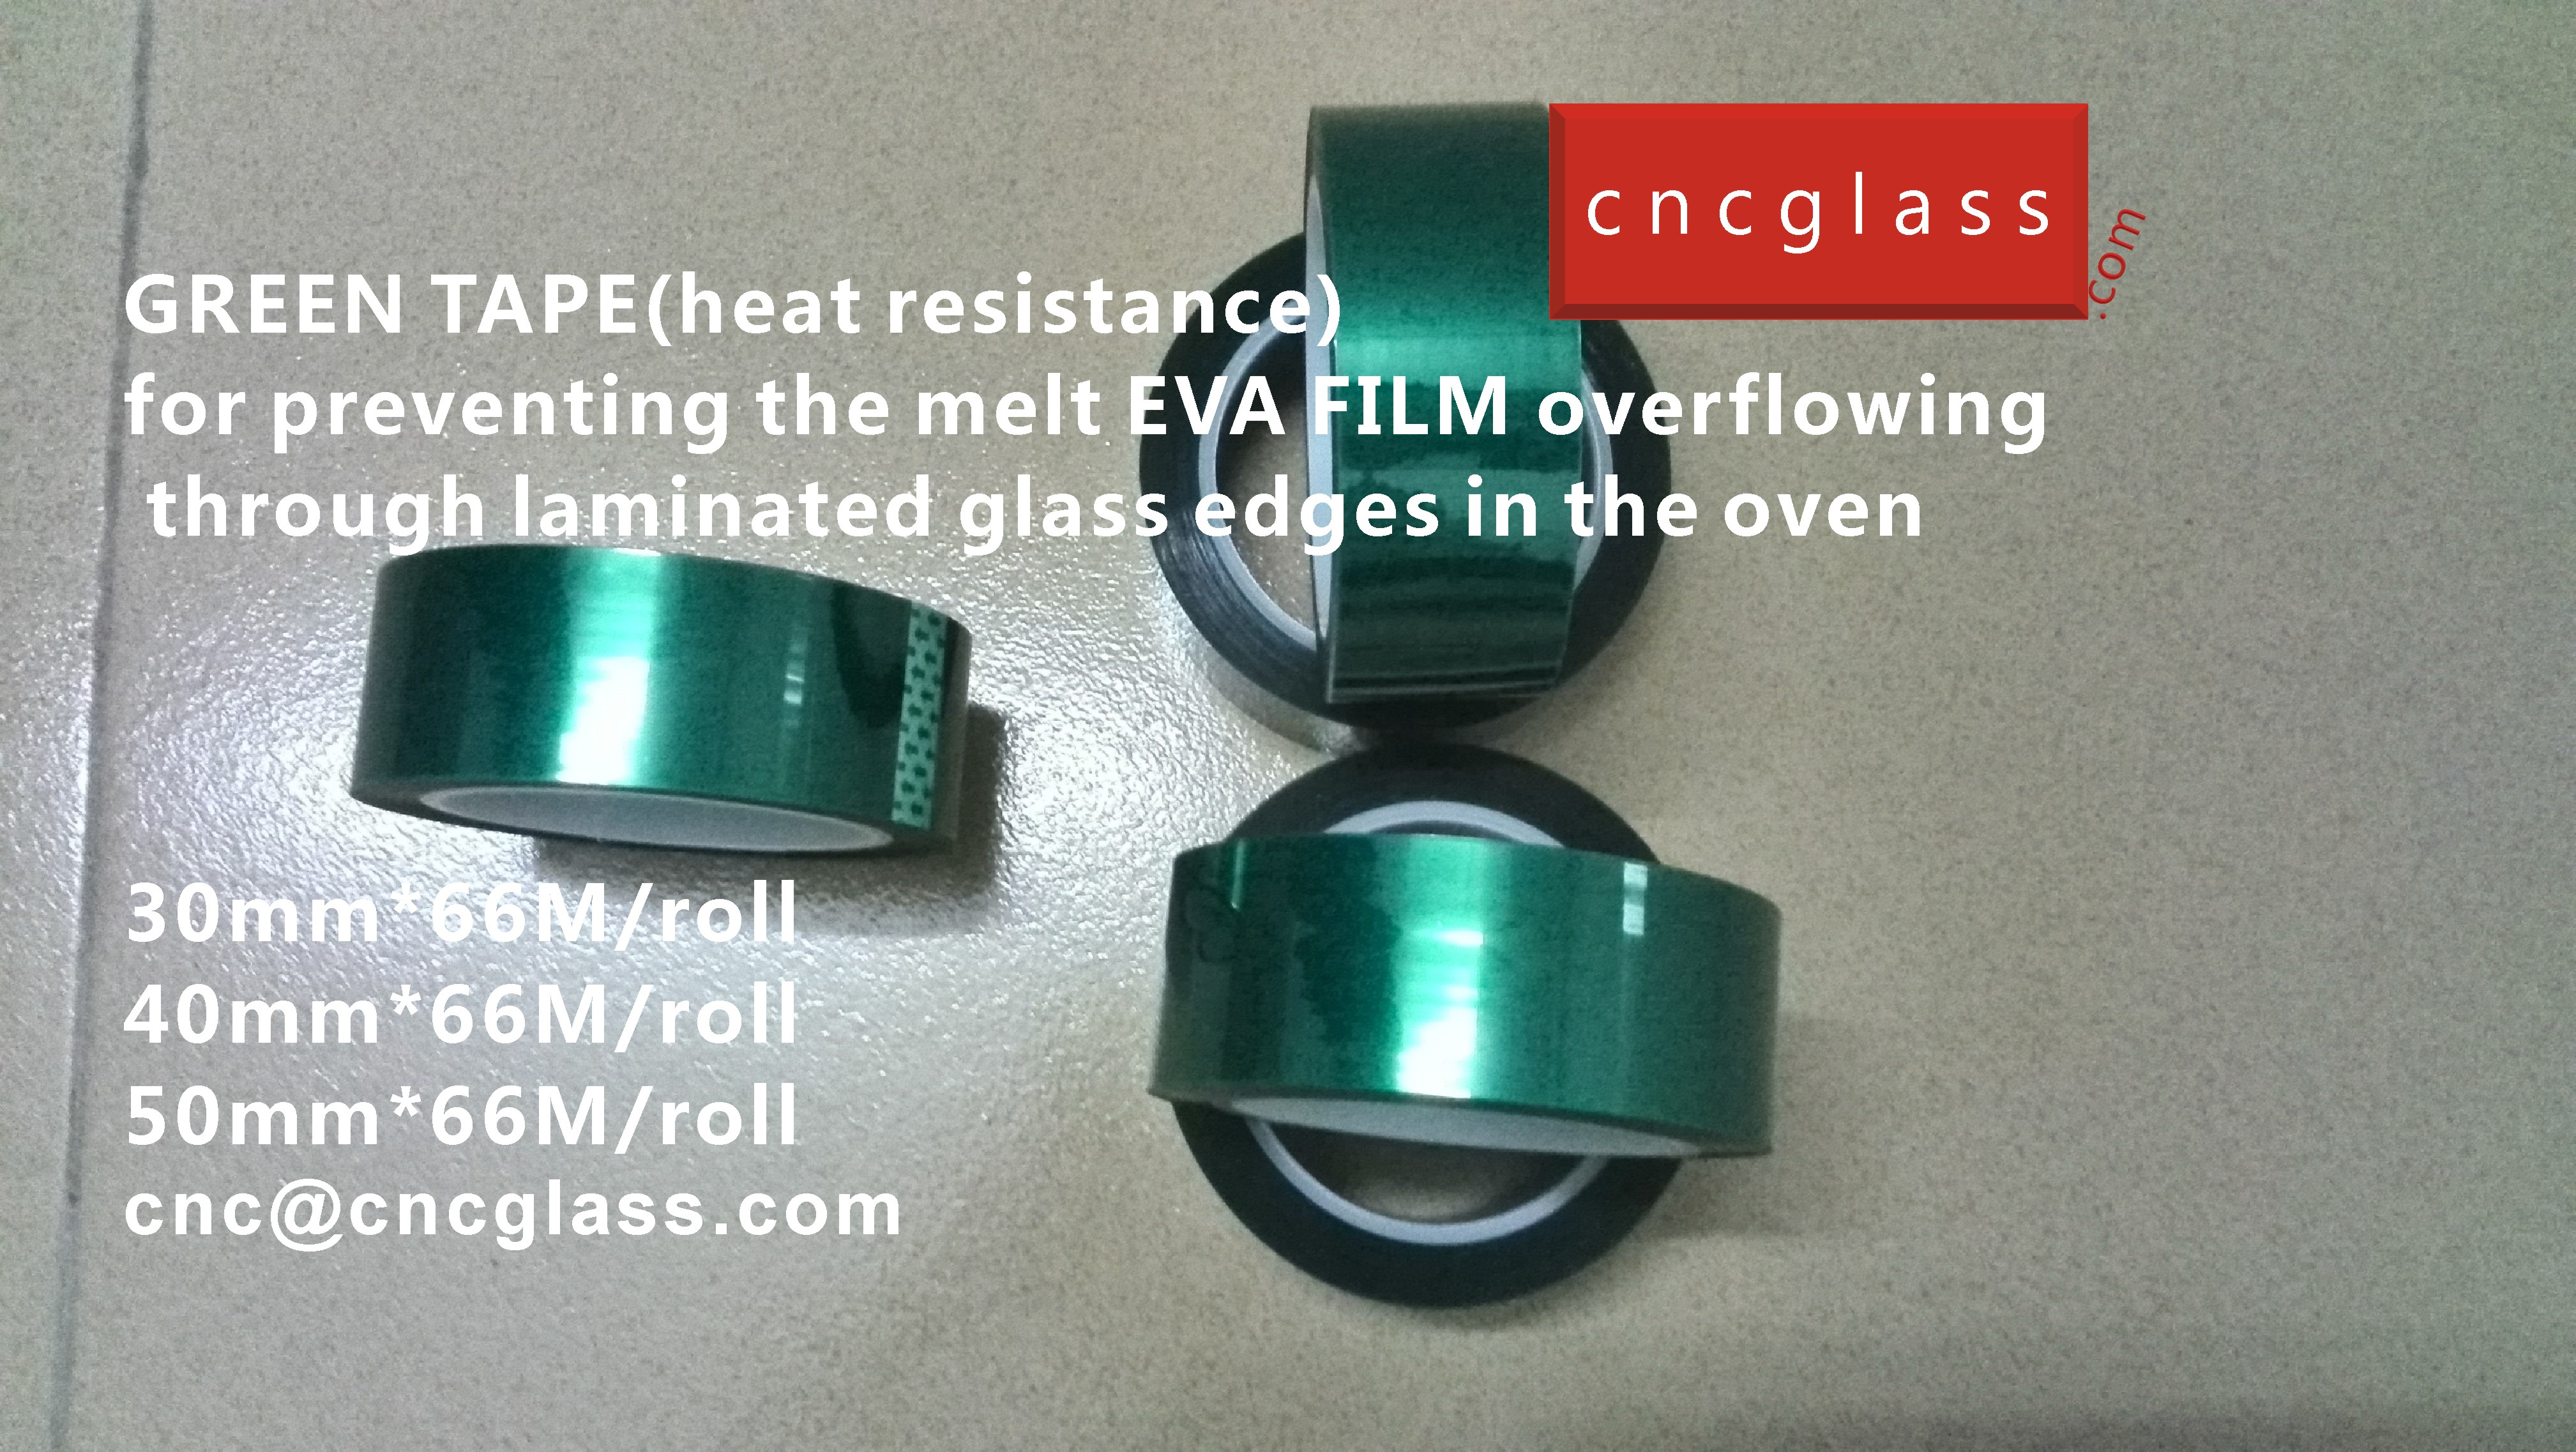 06 HOW TO USE GREEN TAPE(HEAT RESISTANCE) IN EVA FILM GLASS LAMINATING GLAZING